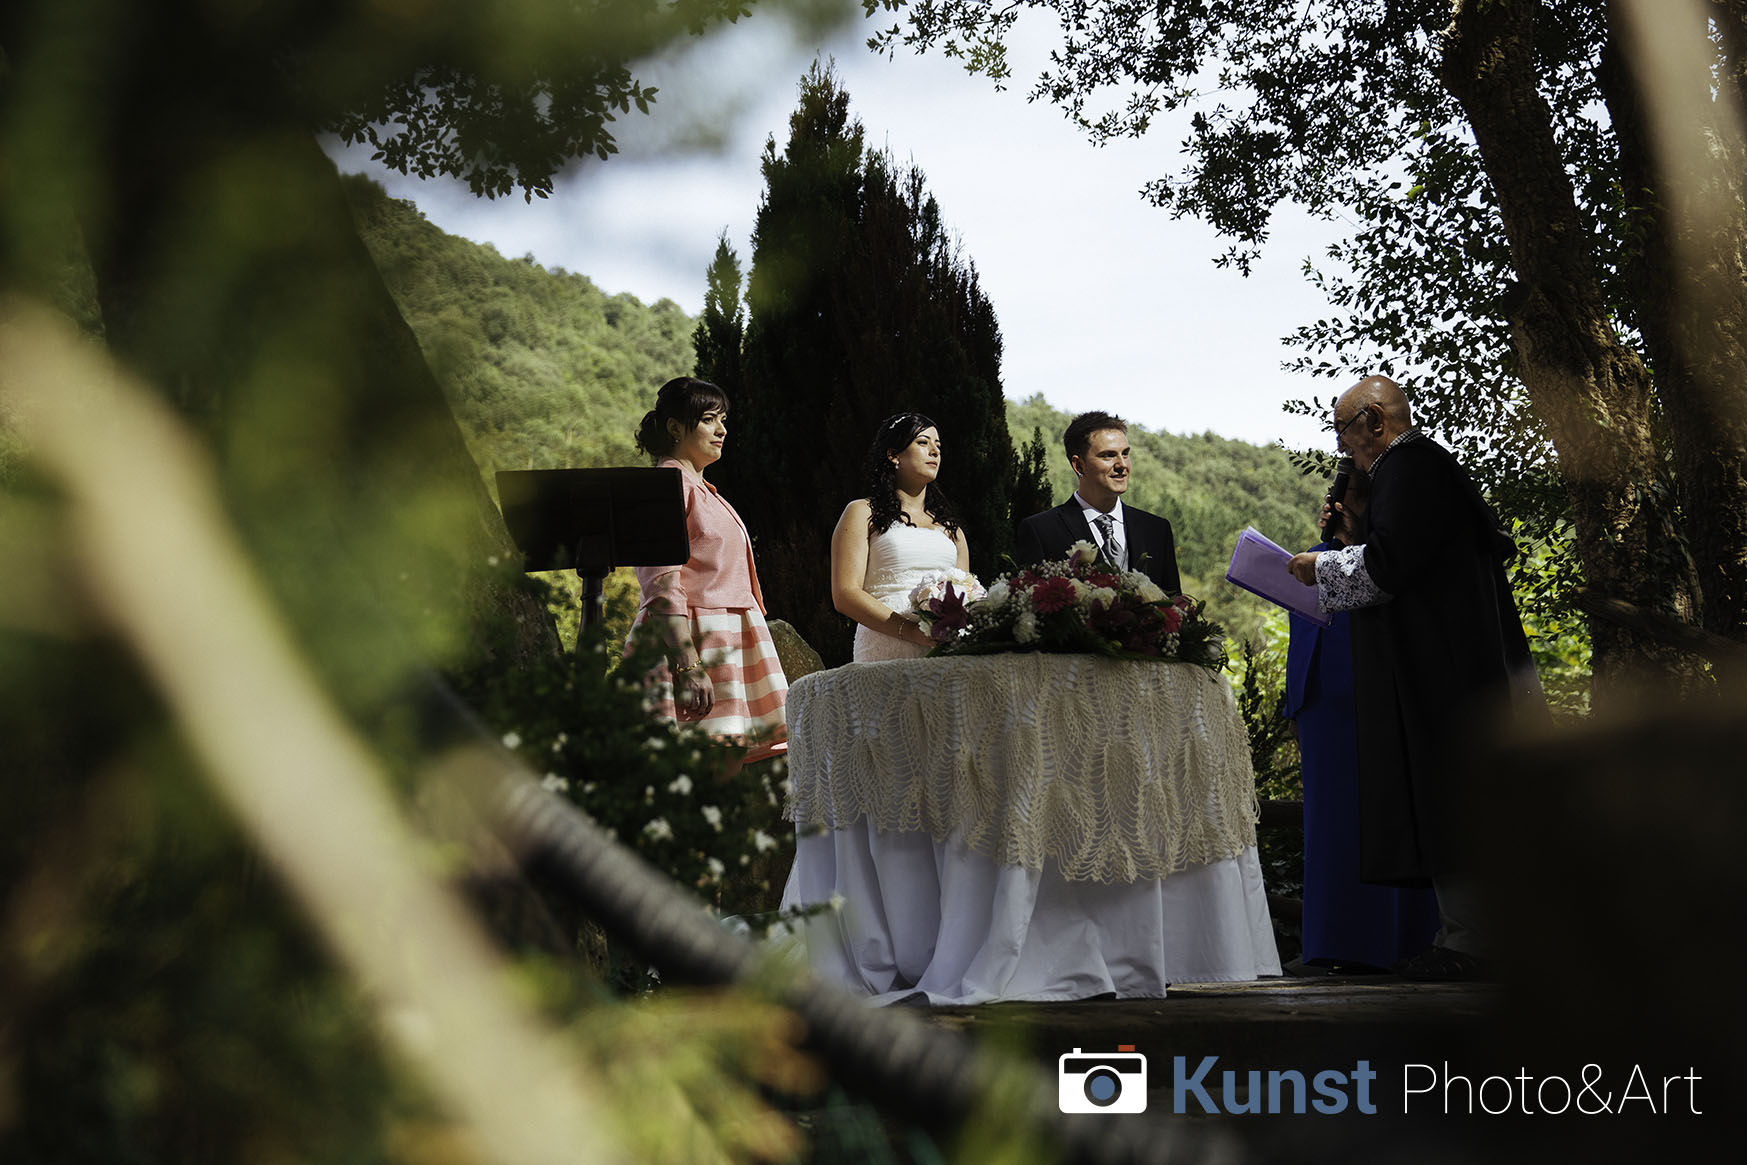 Outdoor Wedding Photography at Lezima Restaurant, Basque Country